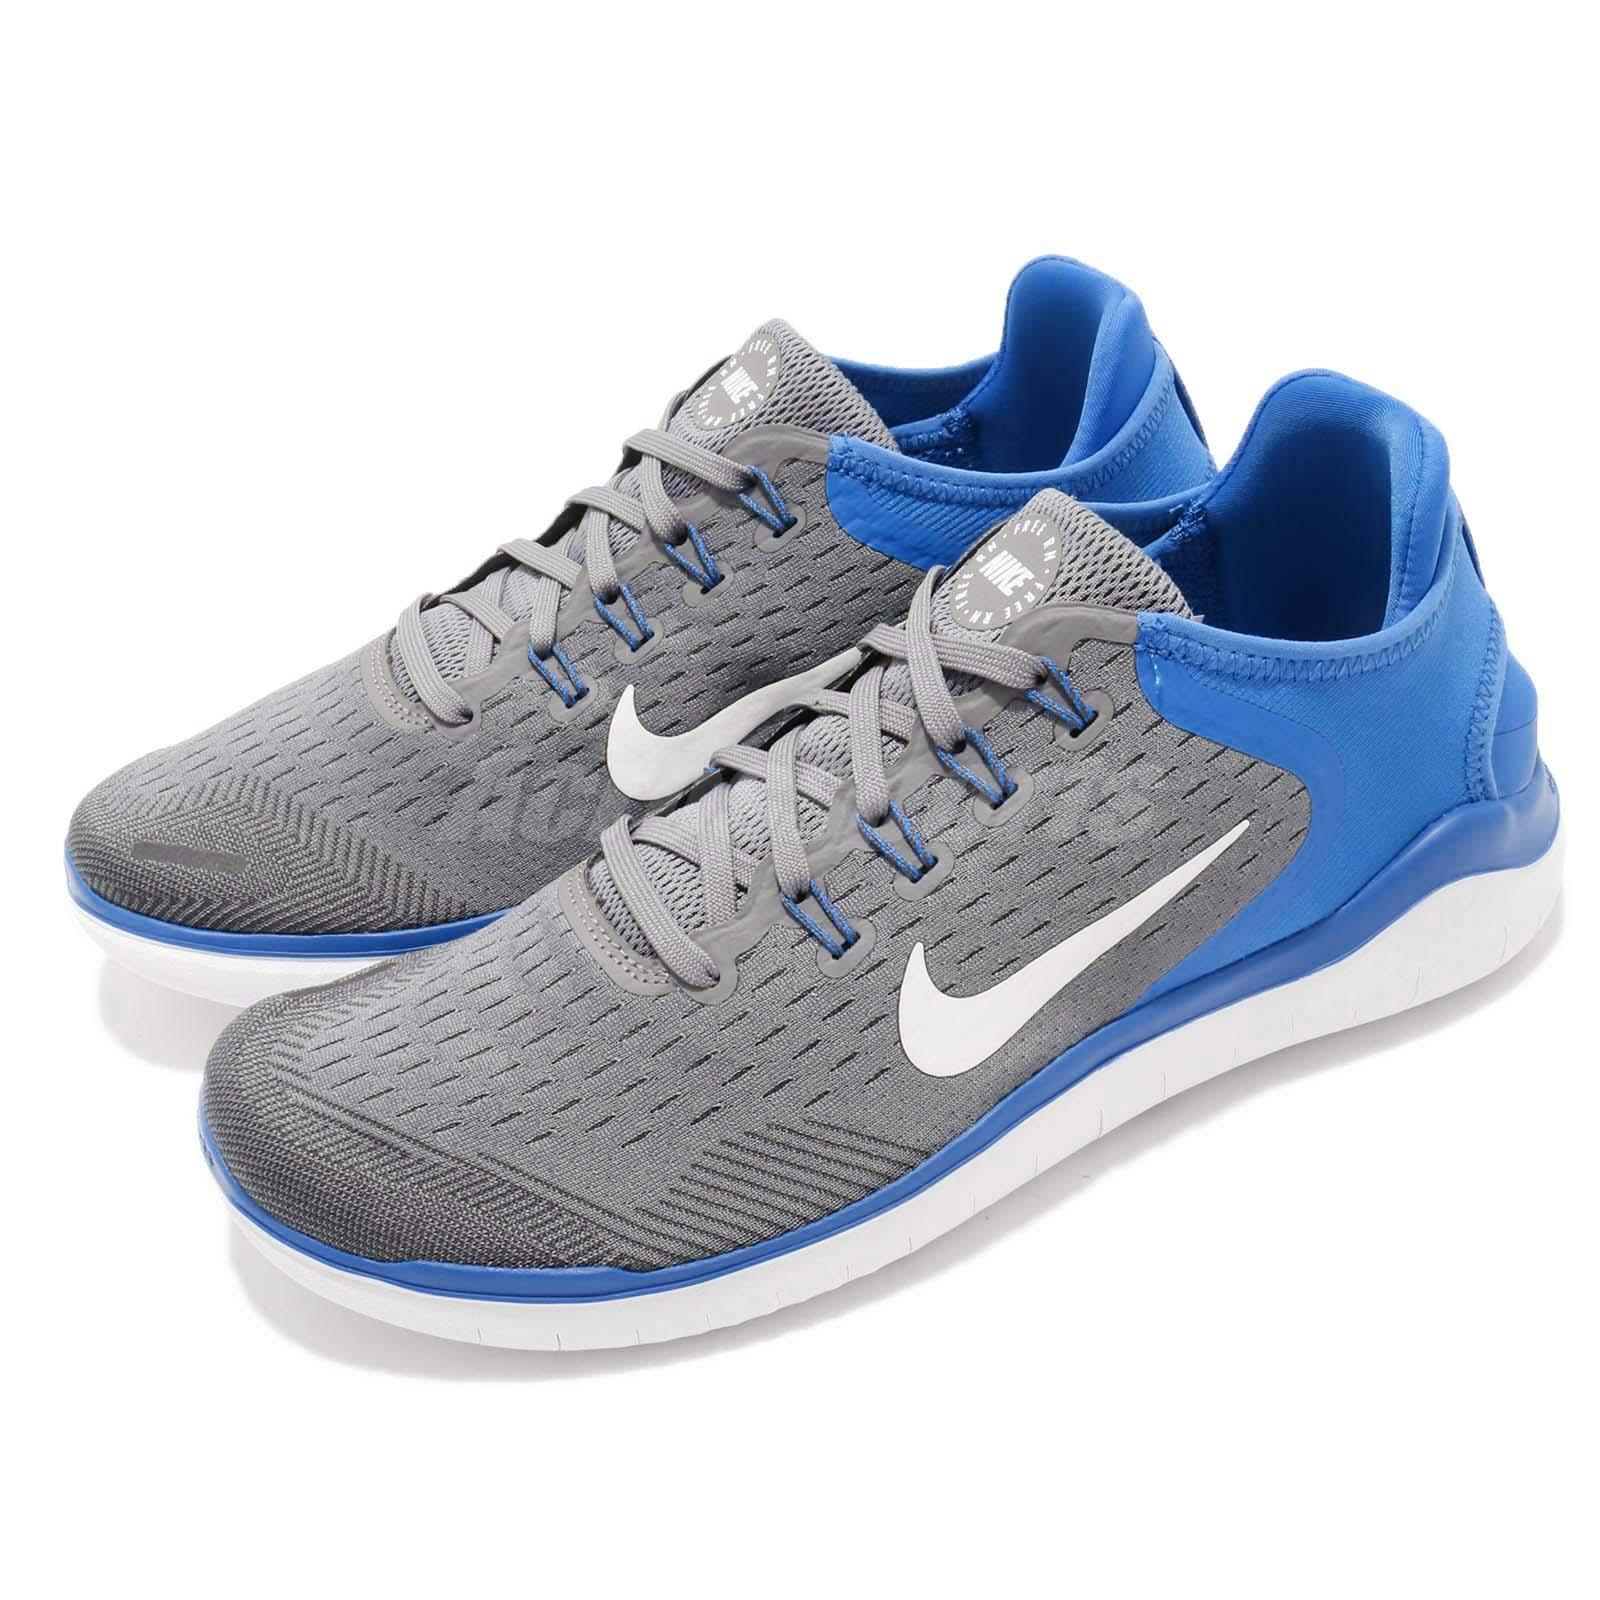 a04ac0bea576 Details about Nike Free RN 2018 Run Grey Blue White Men Running Shoes  Sneakers 942836-008